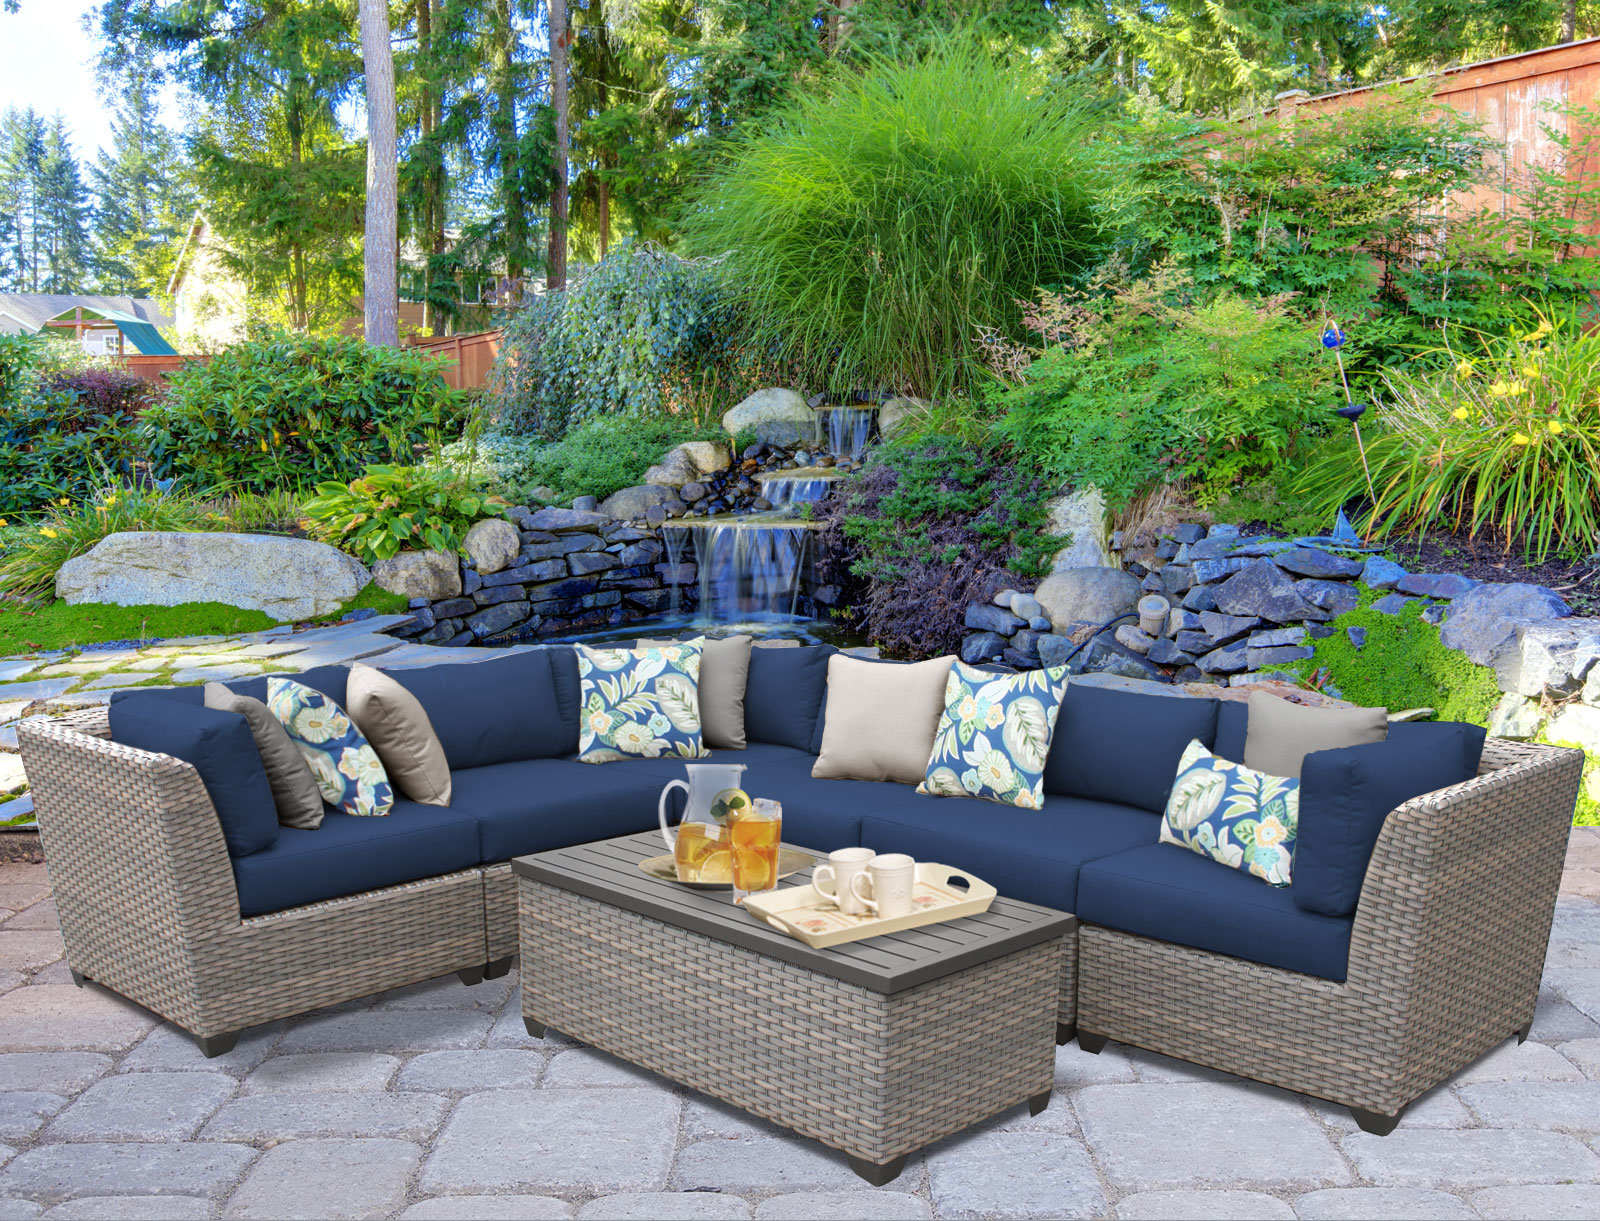 2020 Meeks 7 Piece Rattan Sectional Seating Group With Cushions Within Meeks Patio Sofas With Cushions (Gallery 8 of 20)